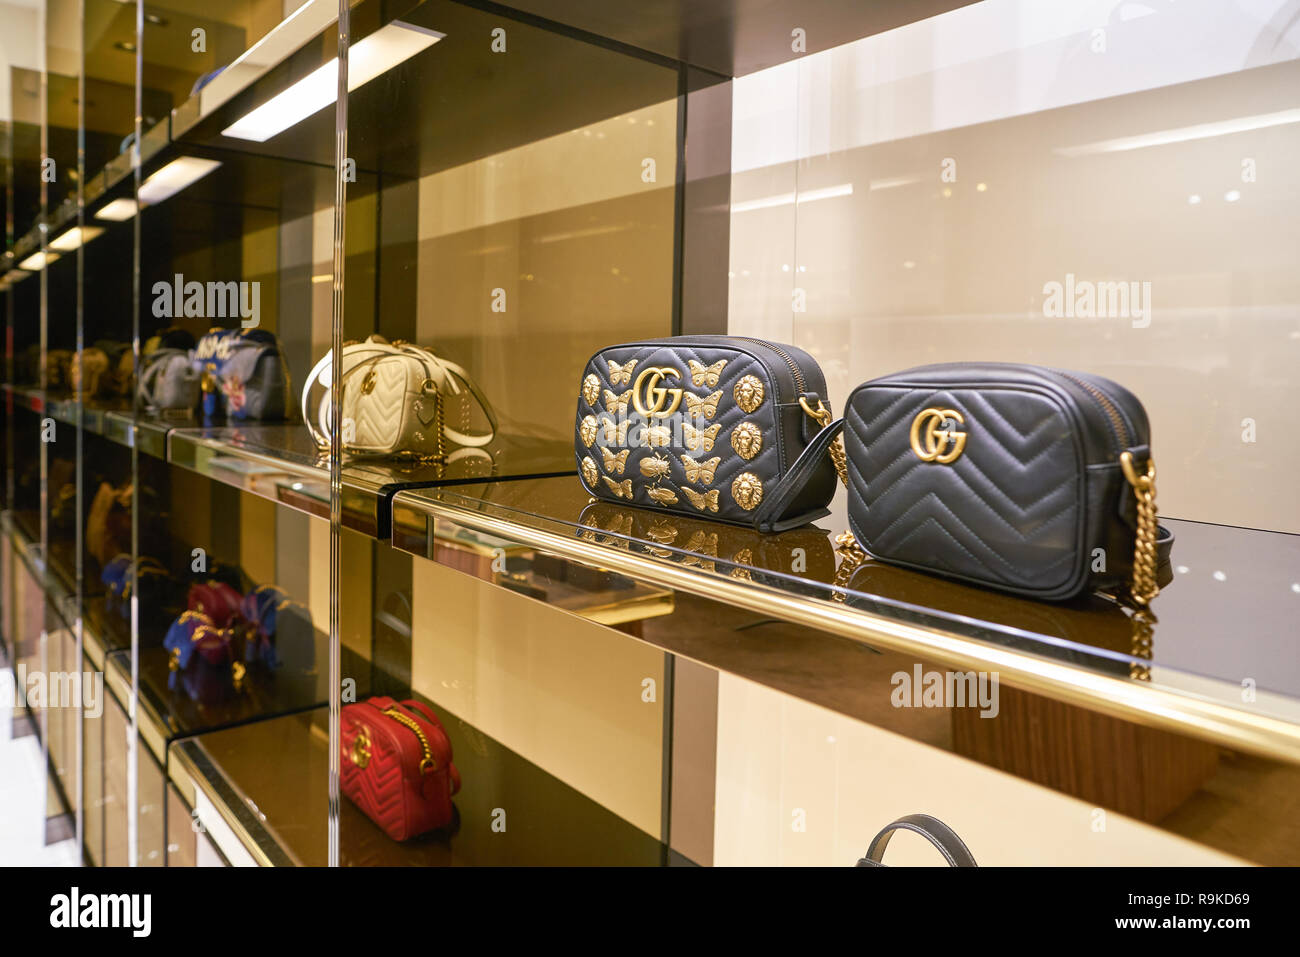 newest collection 2dcf5 ea08b Gucci Outlet Stock Photos & Gucci Outlet Stock Images - Alamy